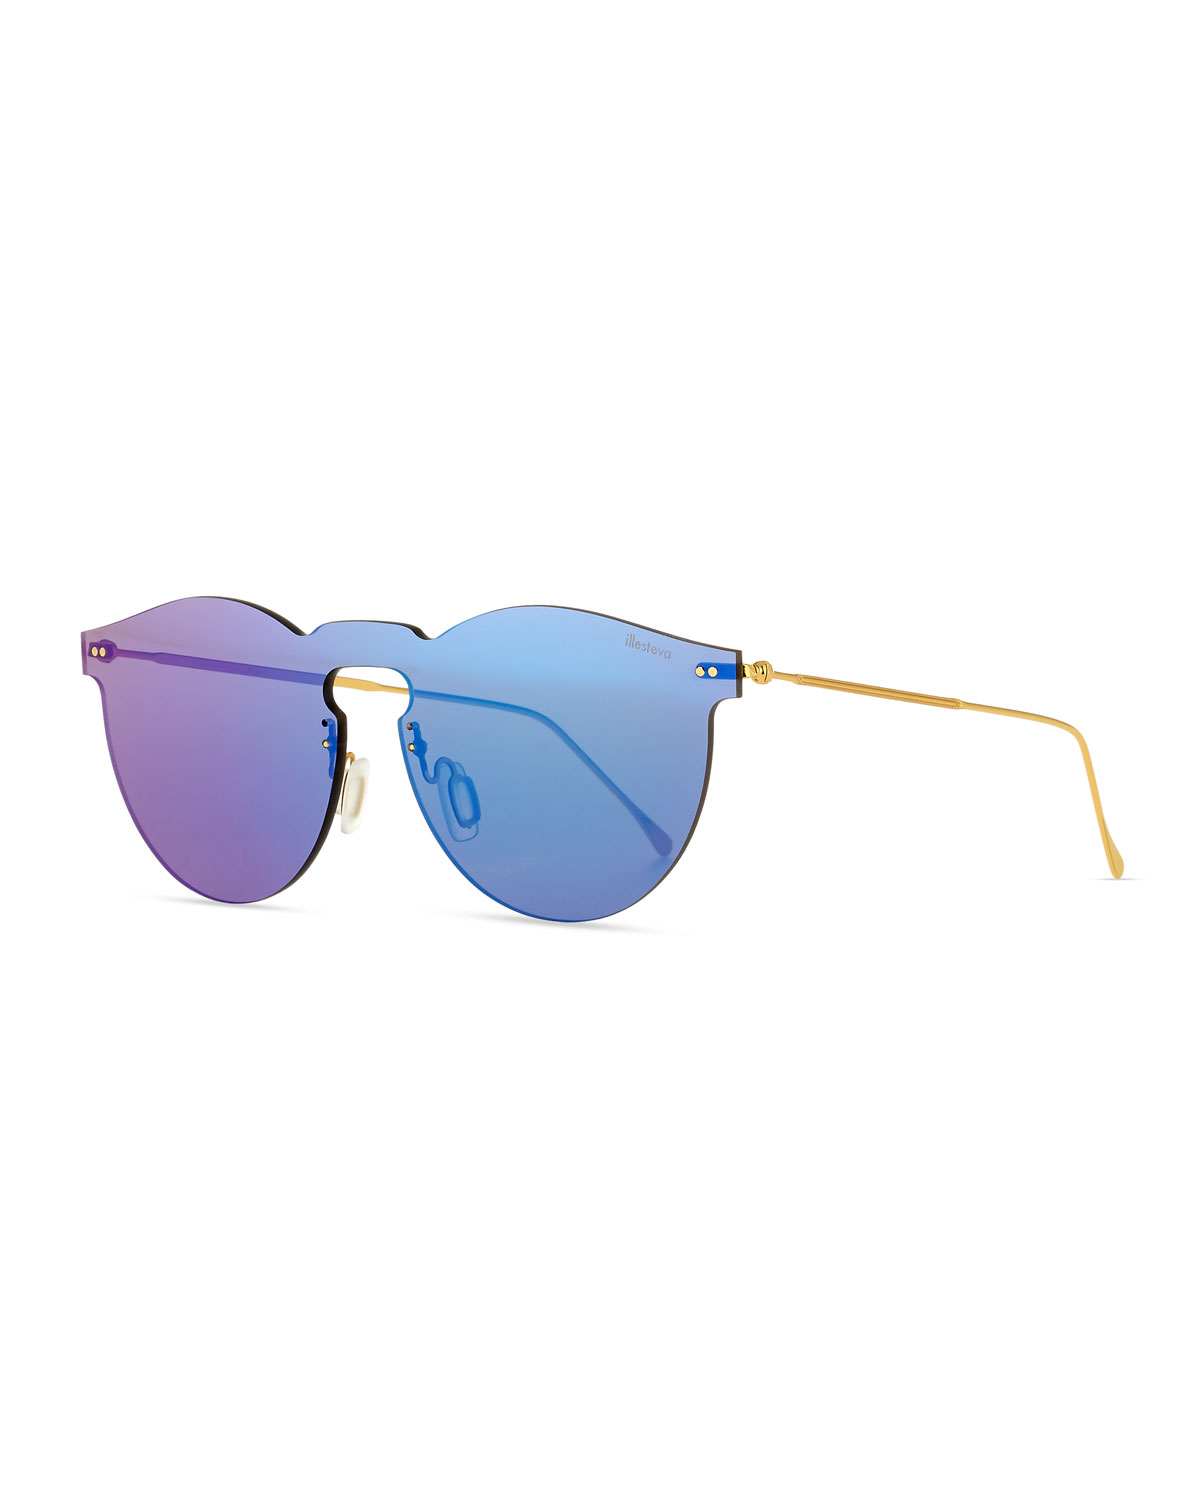 Leonard Rimless Mirrored Sunglasses, Teal